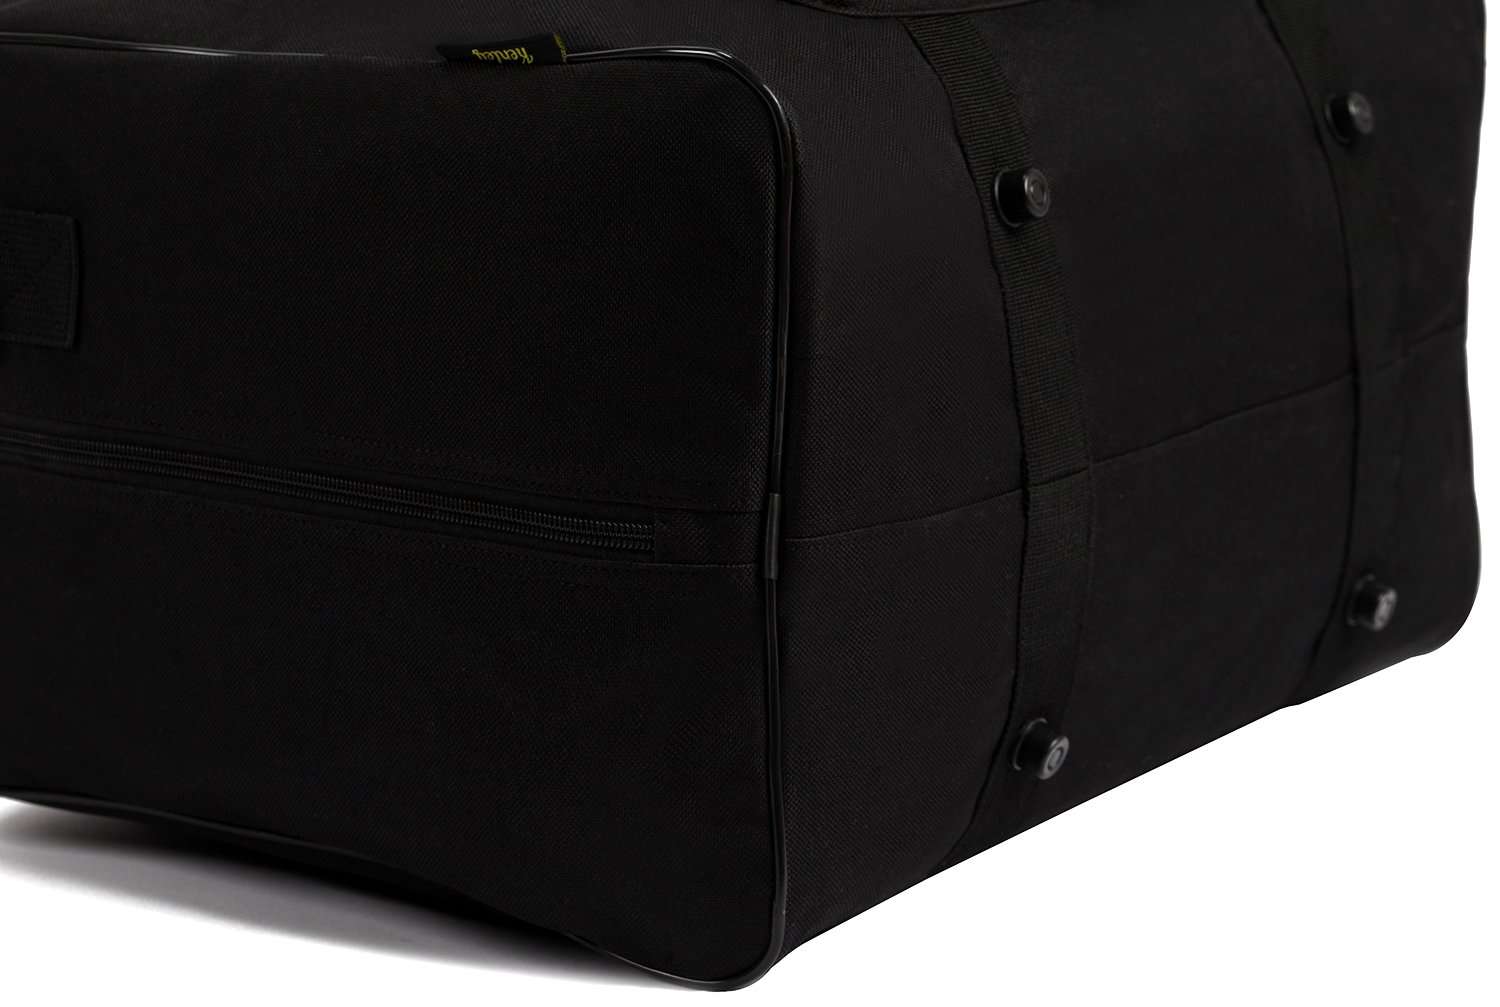 Classic Black Universal Fit 18x10x13 inches for Singer Brother Bernina Janome Padded Storage Cover Carrying Case with Pockets and Handles Kenley Sewing Machine Tote Bag